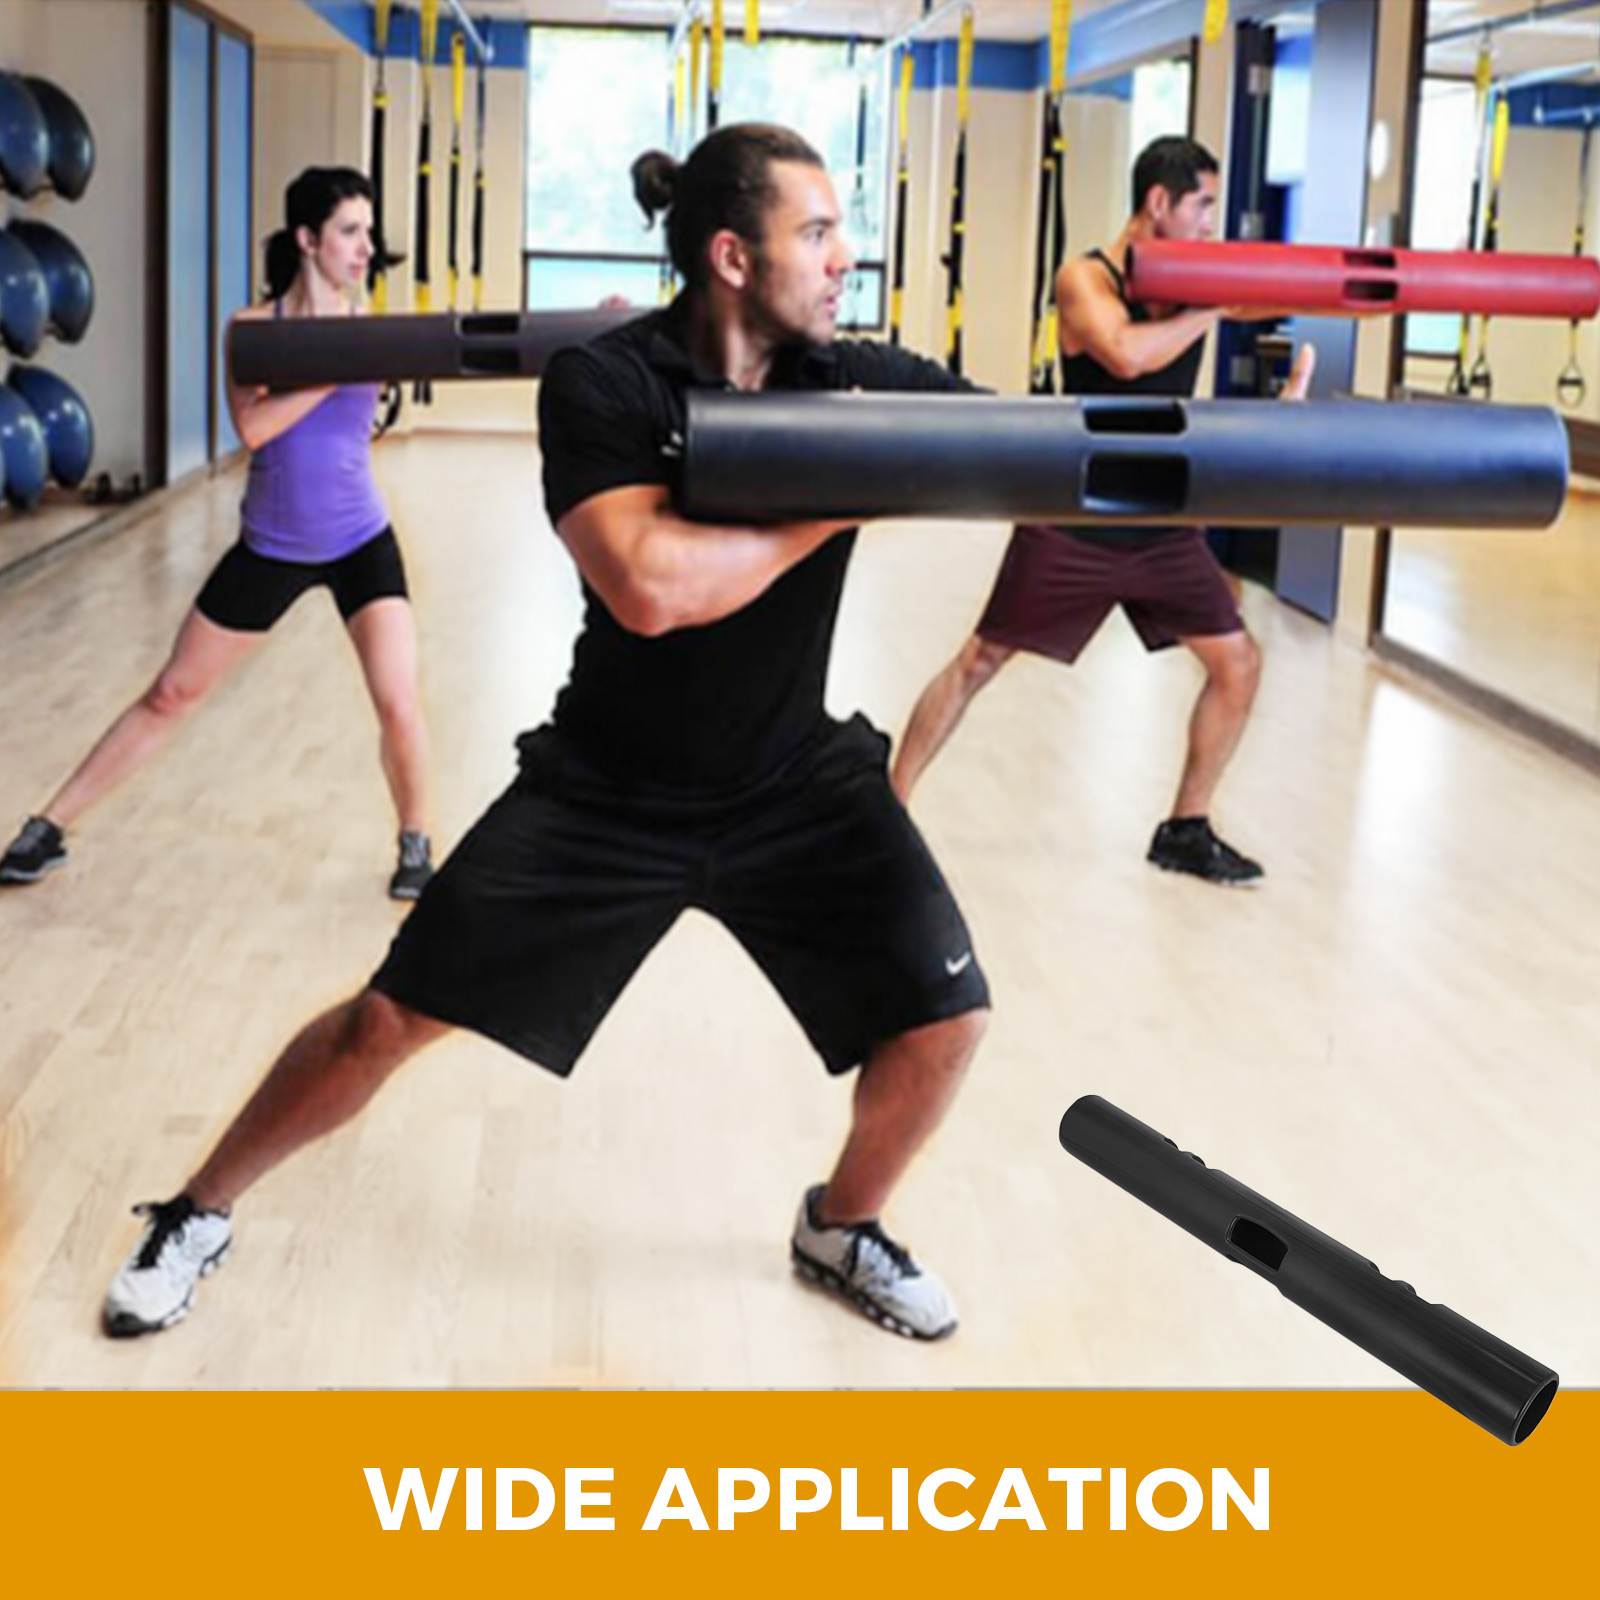 Vipr-Fitpro-Fitness-Tube-Loaded-Movement-Training-weightlifting-4-6-8-10-12-Kg thumbnail 295